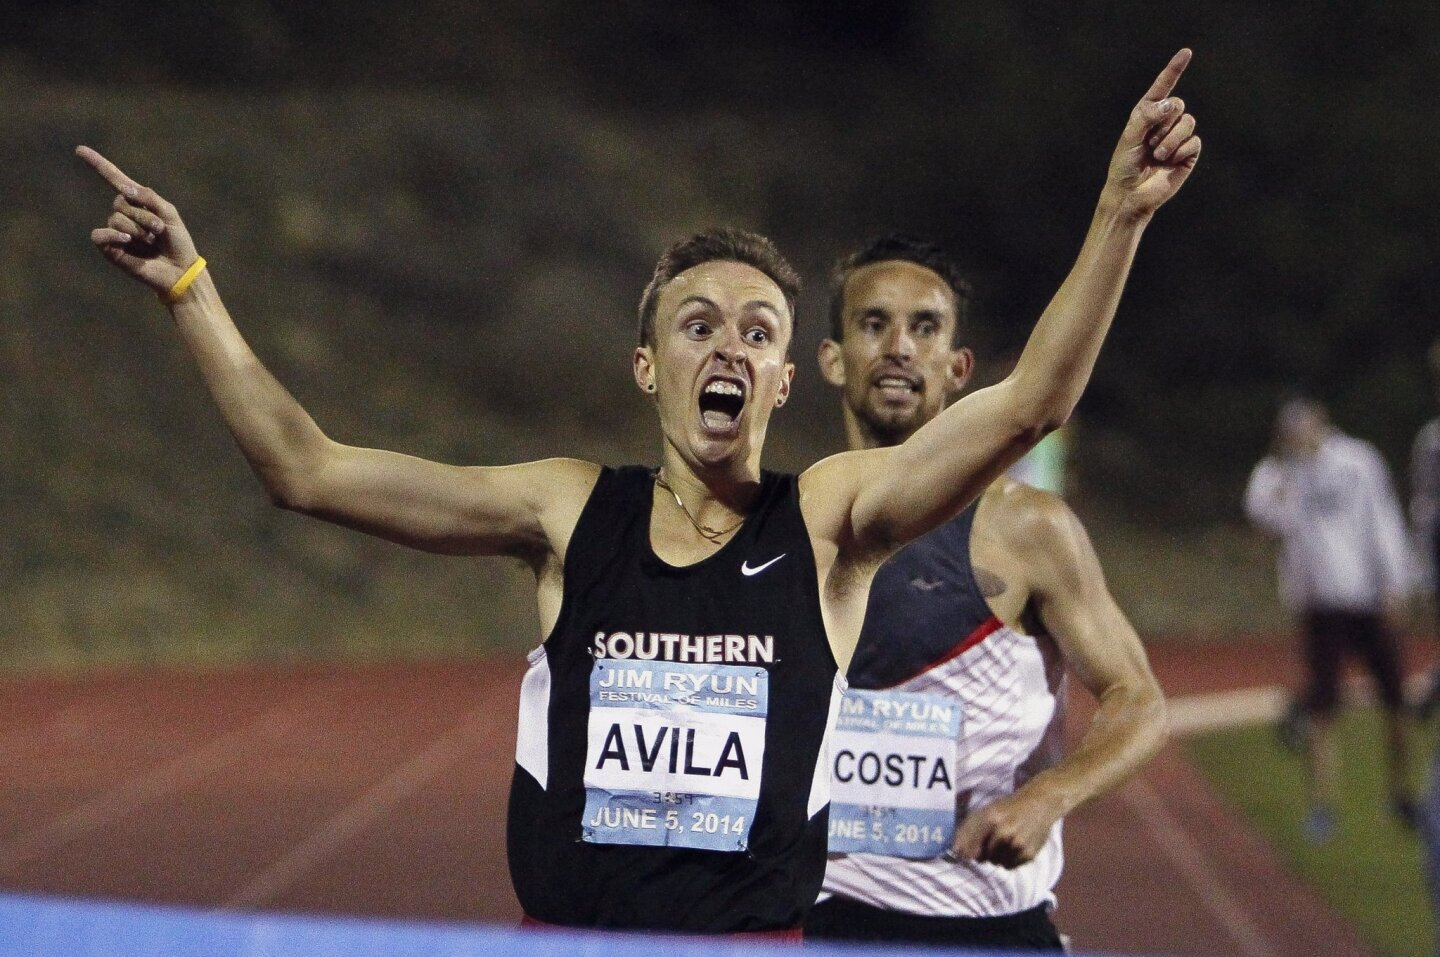 Eric Avila starts to celebrate while he approaches the finish line ahead of AJ Acosta to win the Elite Men's 1 Mile Run during the Jim Ryun Festival of Miles at Balboa Stadium in San Diego.